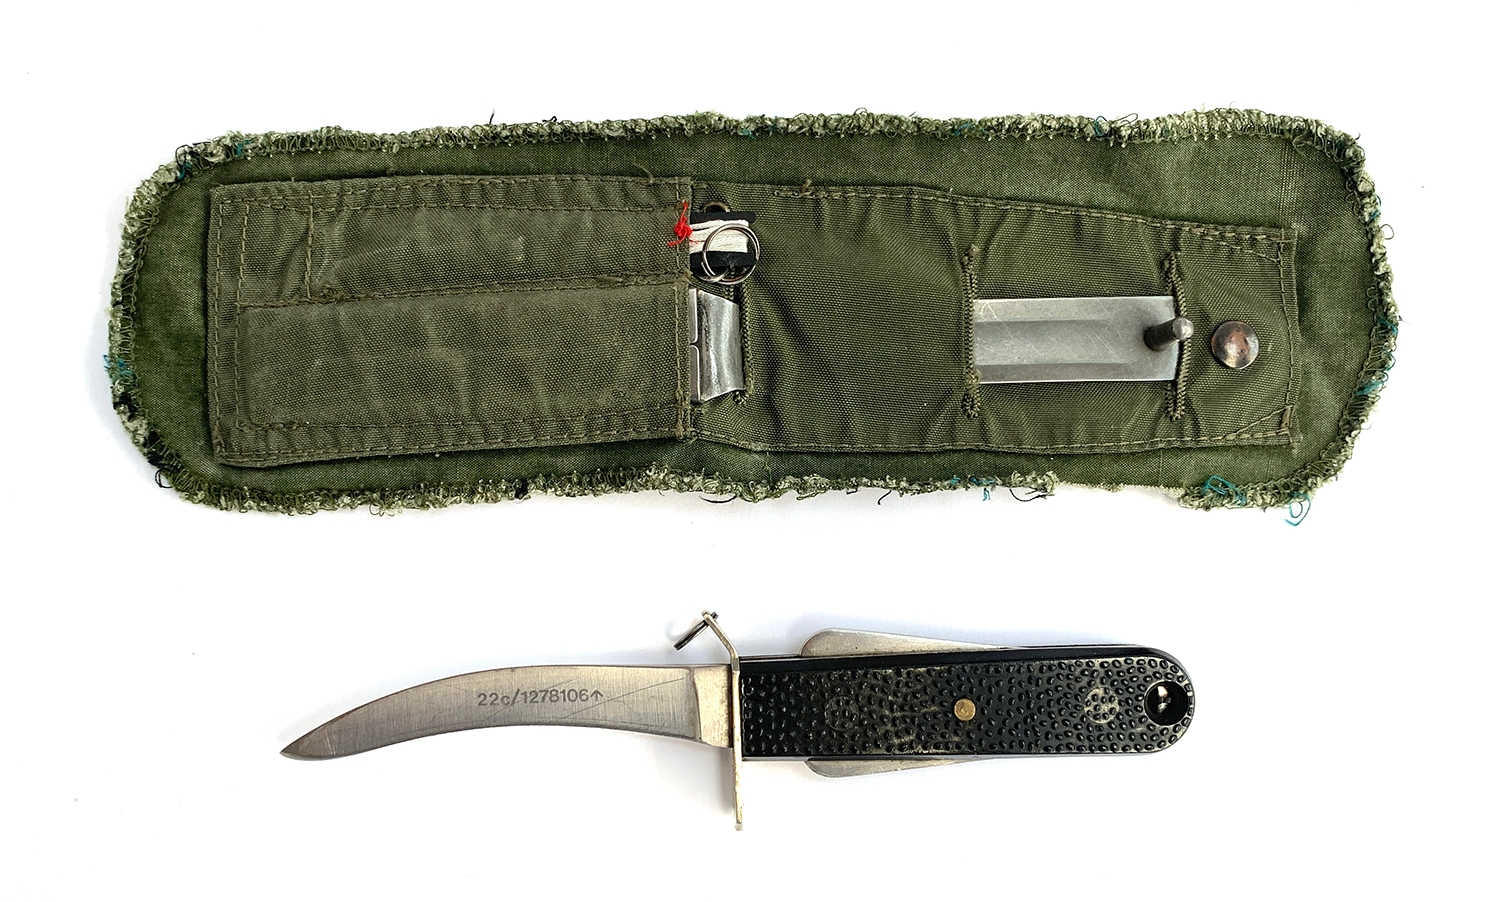 An RAF Mk3 Aircrew emergency survival knife with sheath and lanyard